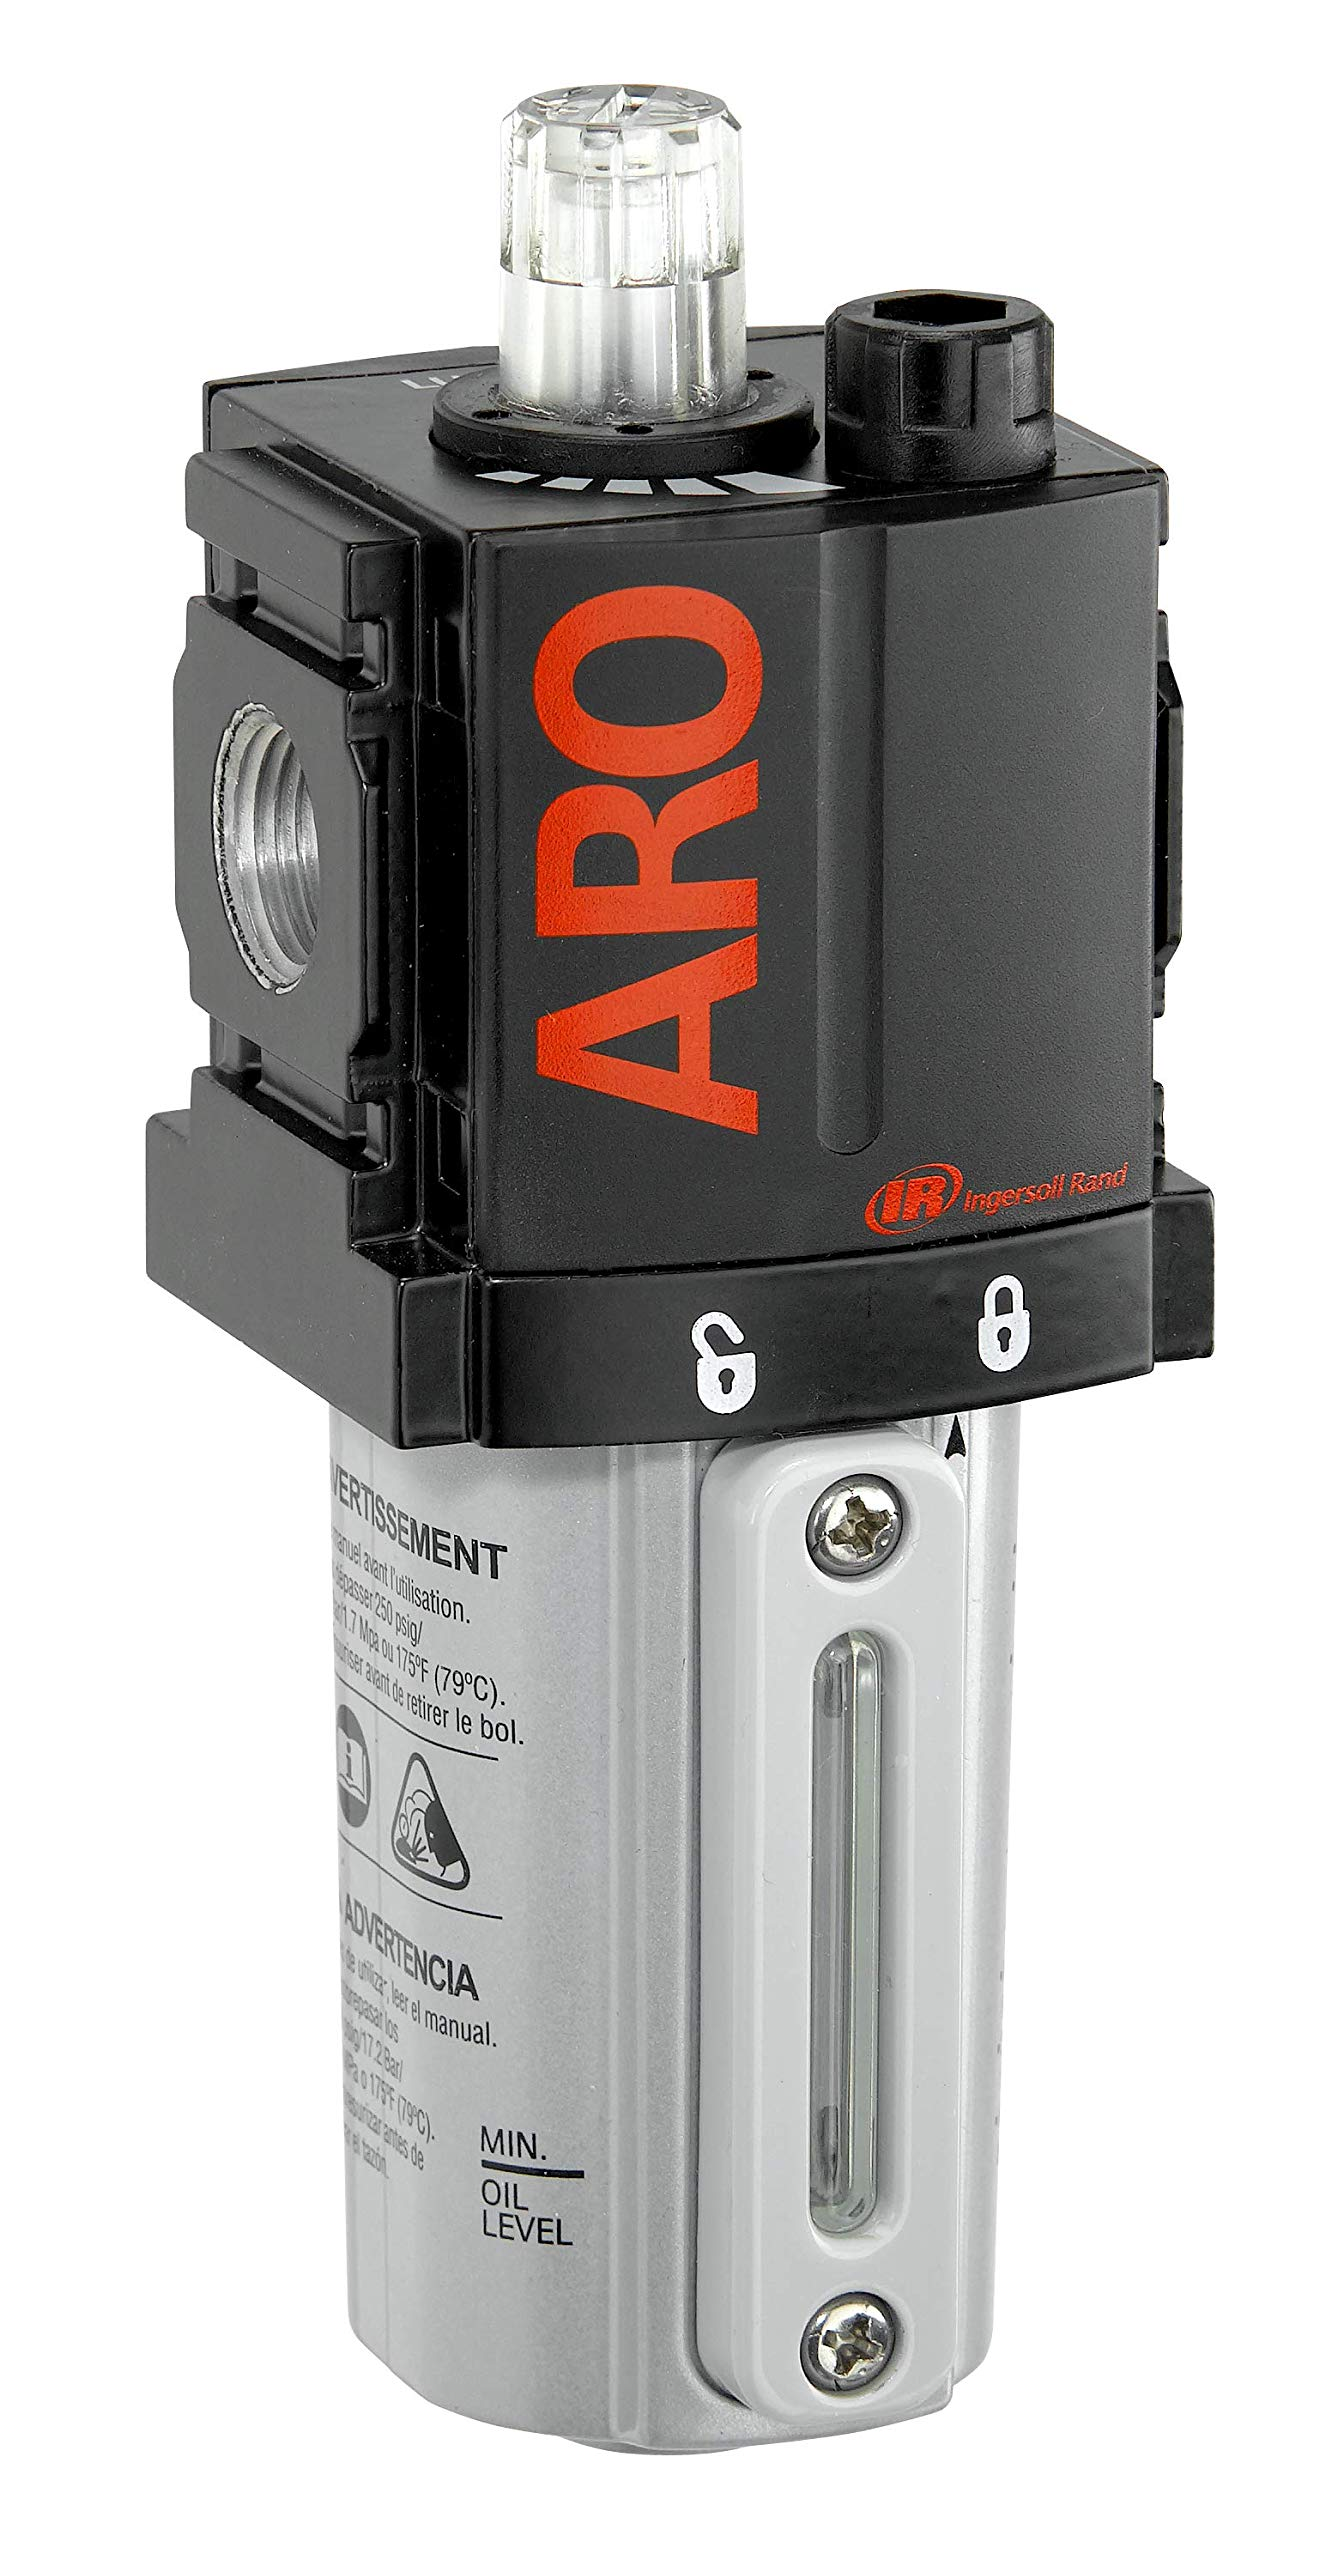 ARO L36341-100-VS Air Line Lubricator, 1/2'' NPT - 150 psi Max Inlet by Ingersoll Rand